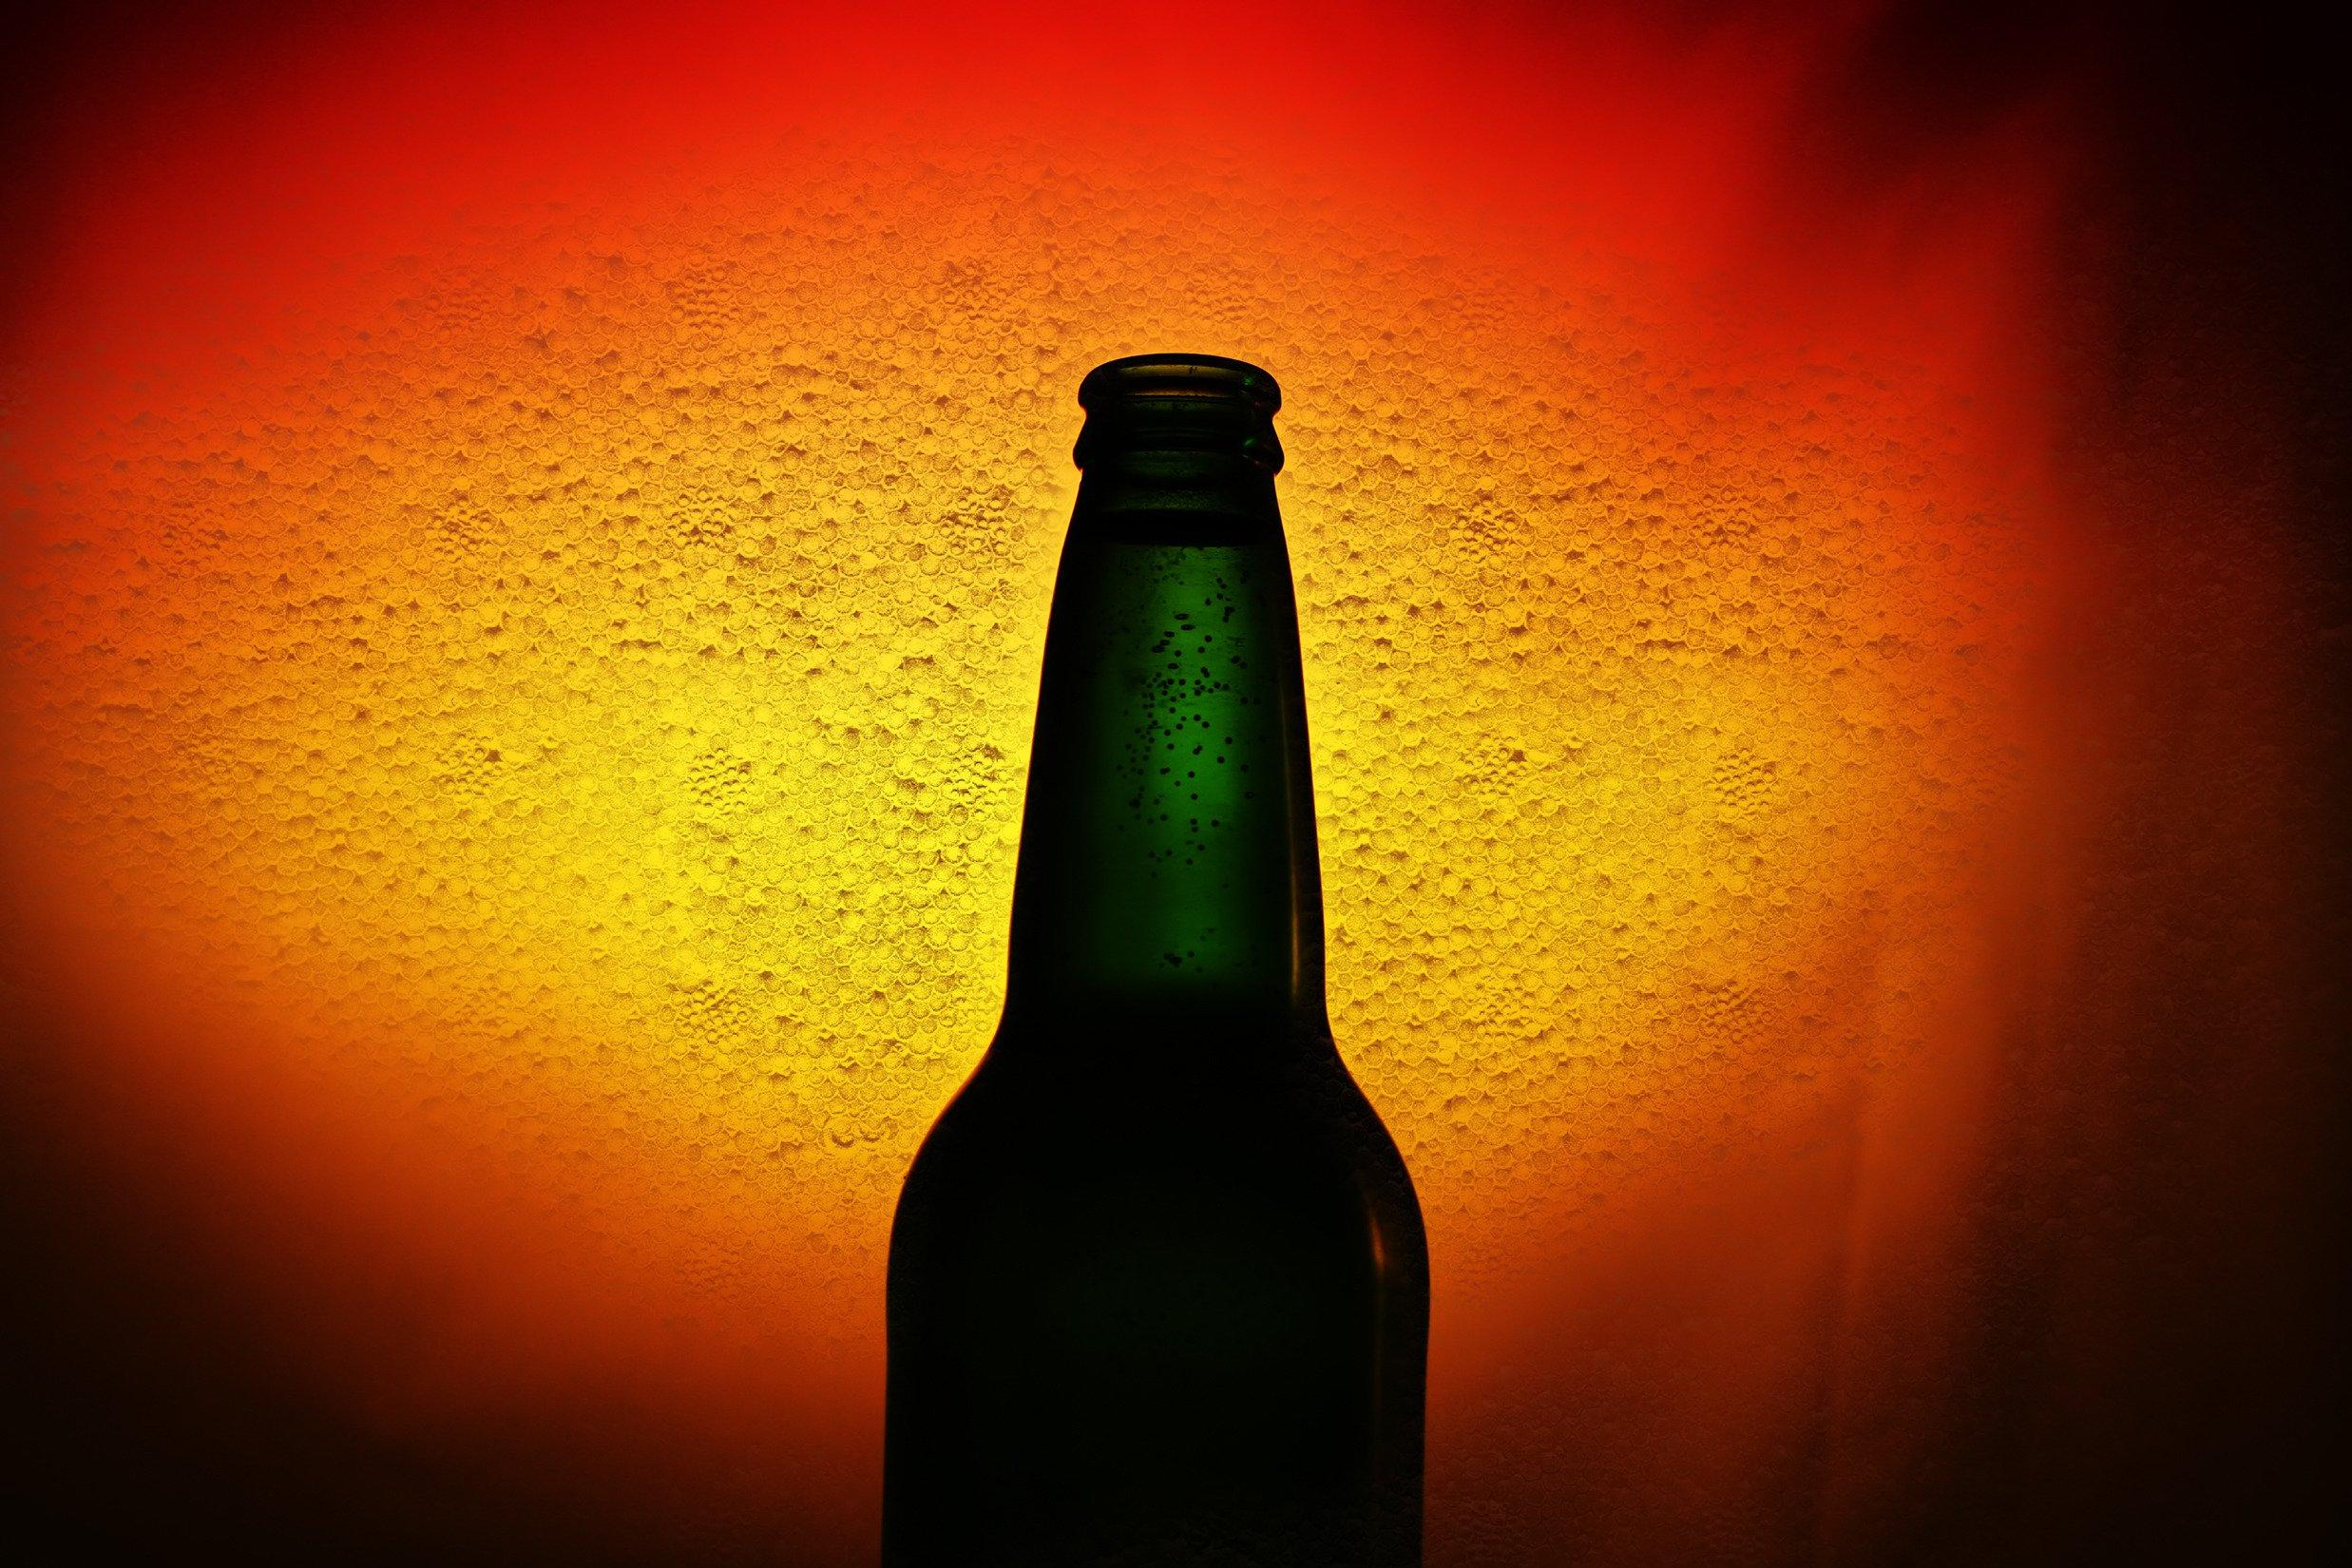 Solar Powered Beer? 8 Ridiculous Ways the Government Wastes Your Money